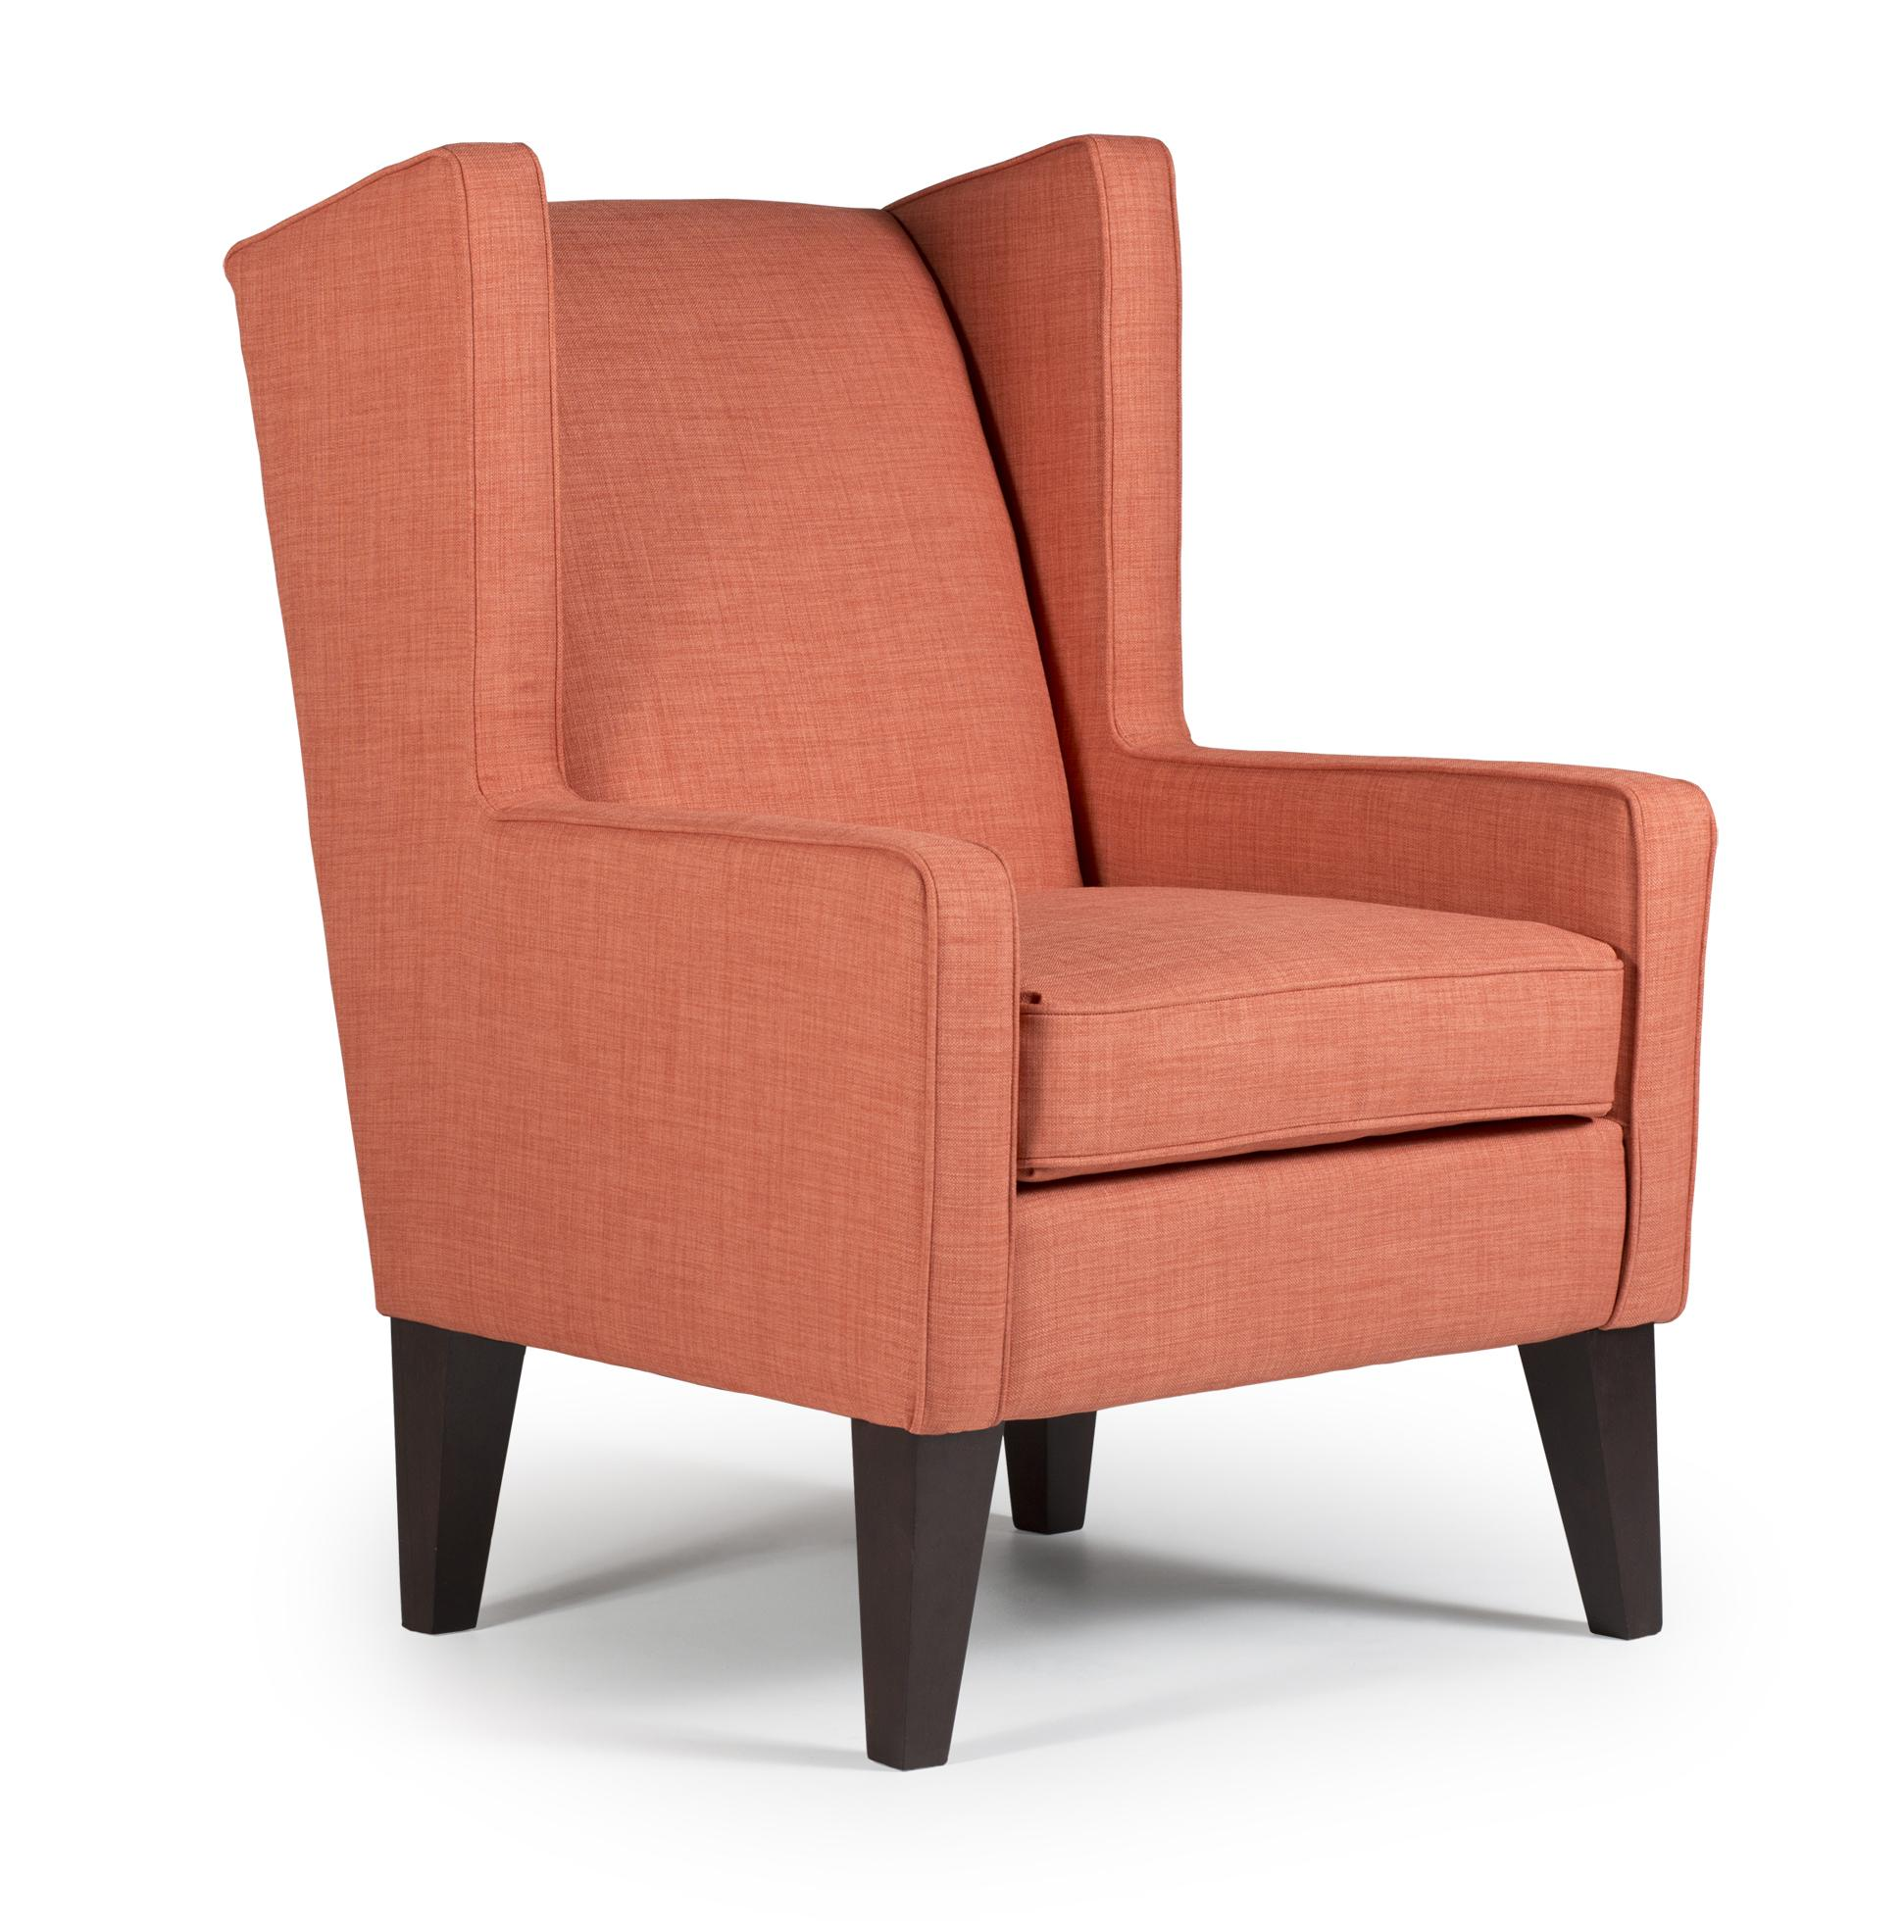 Best Home Furnishings Wing Chairs Wing Chair - Item Number 7170  sc 1 st  Hudsonu0027s Furniture & Best Home Furnishings Wing Chairs 7170 Karla Modern Wing Chair ...